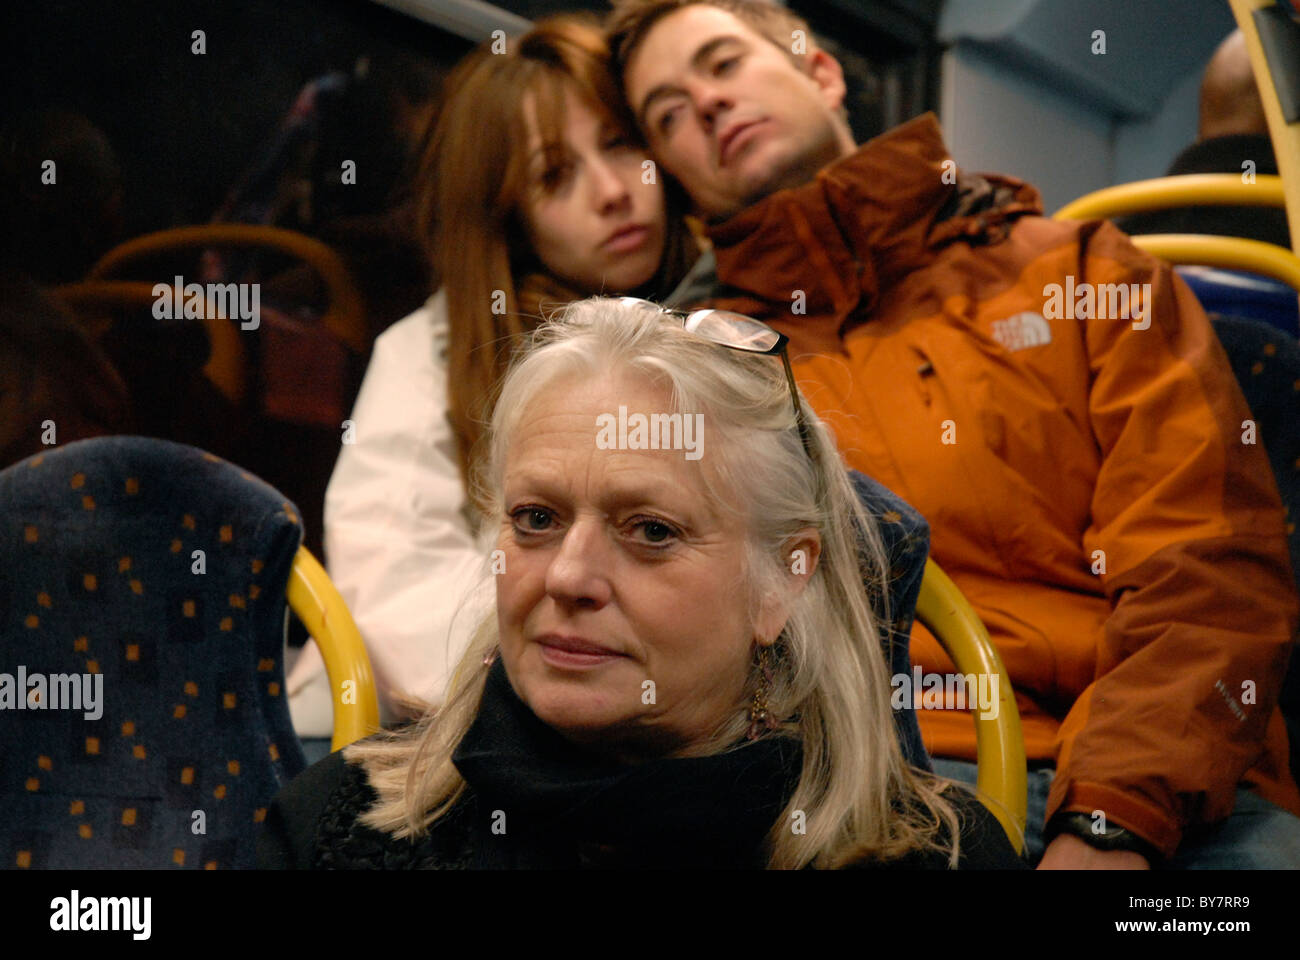 Middle aged Woman on bus with teenage couple behind - Stock Image